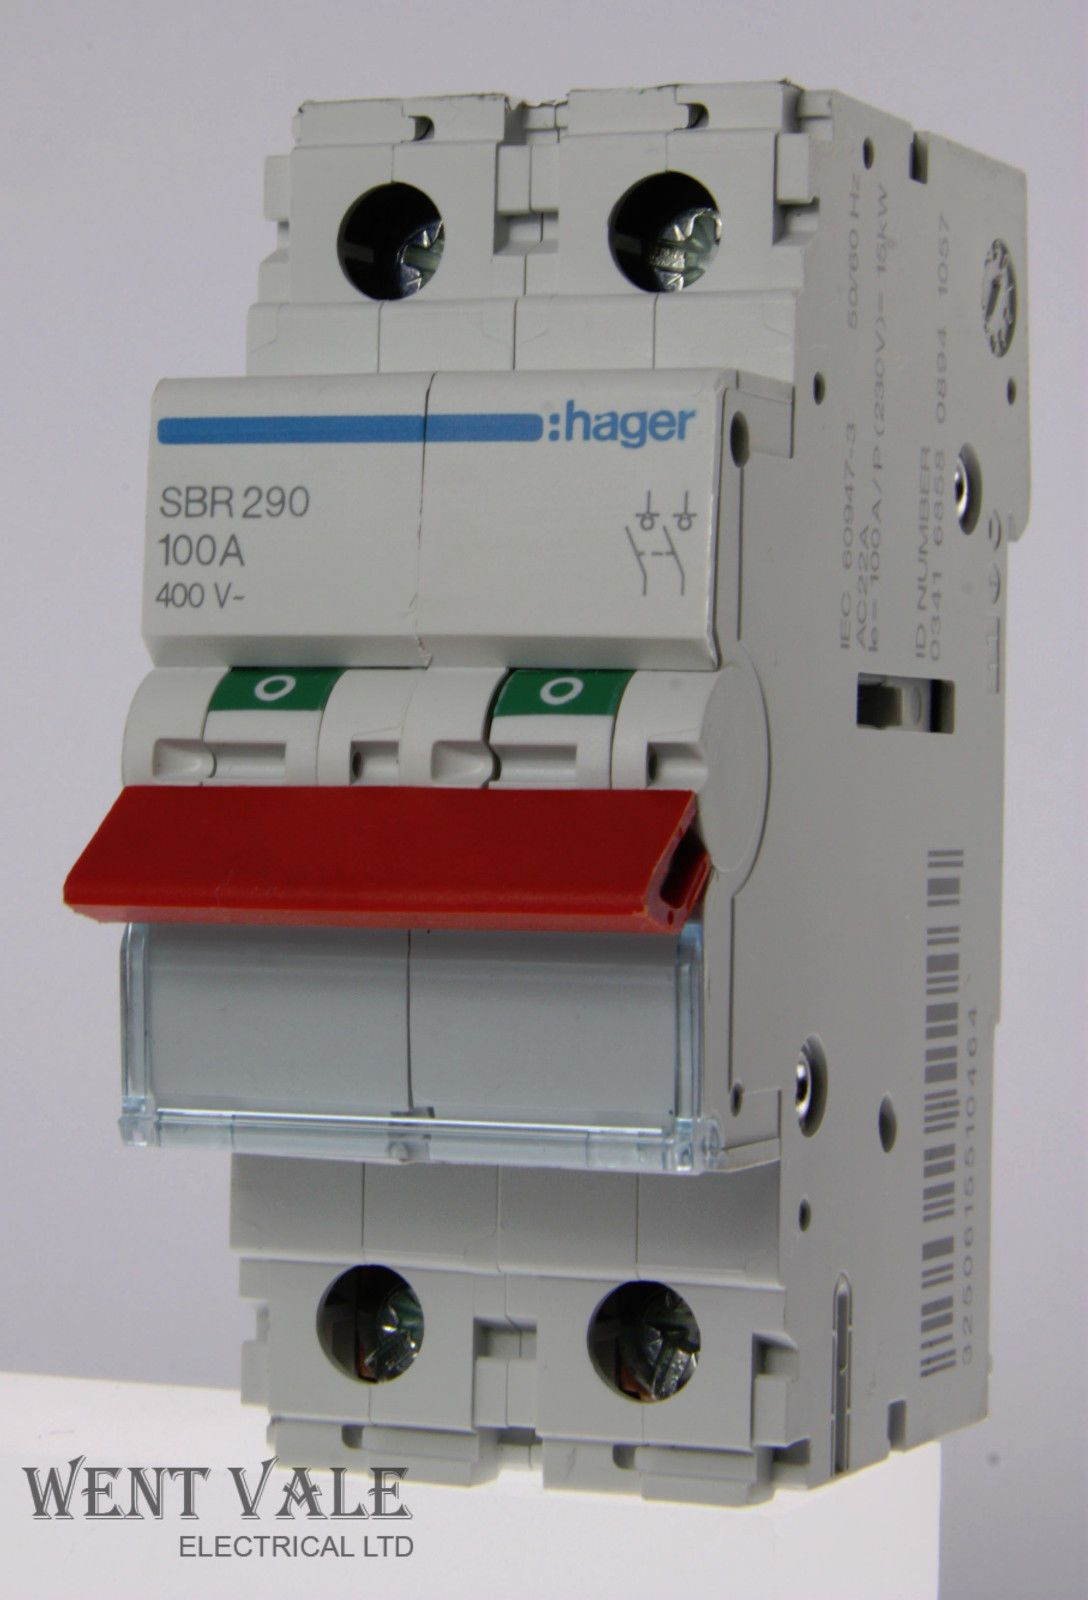 Hager - SBR290 - 100a Double Pole Switch Disconnector Used